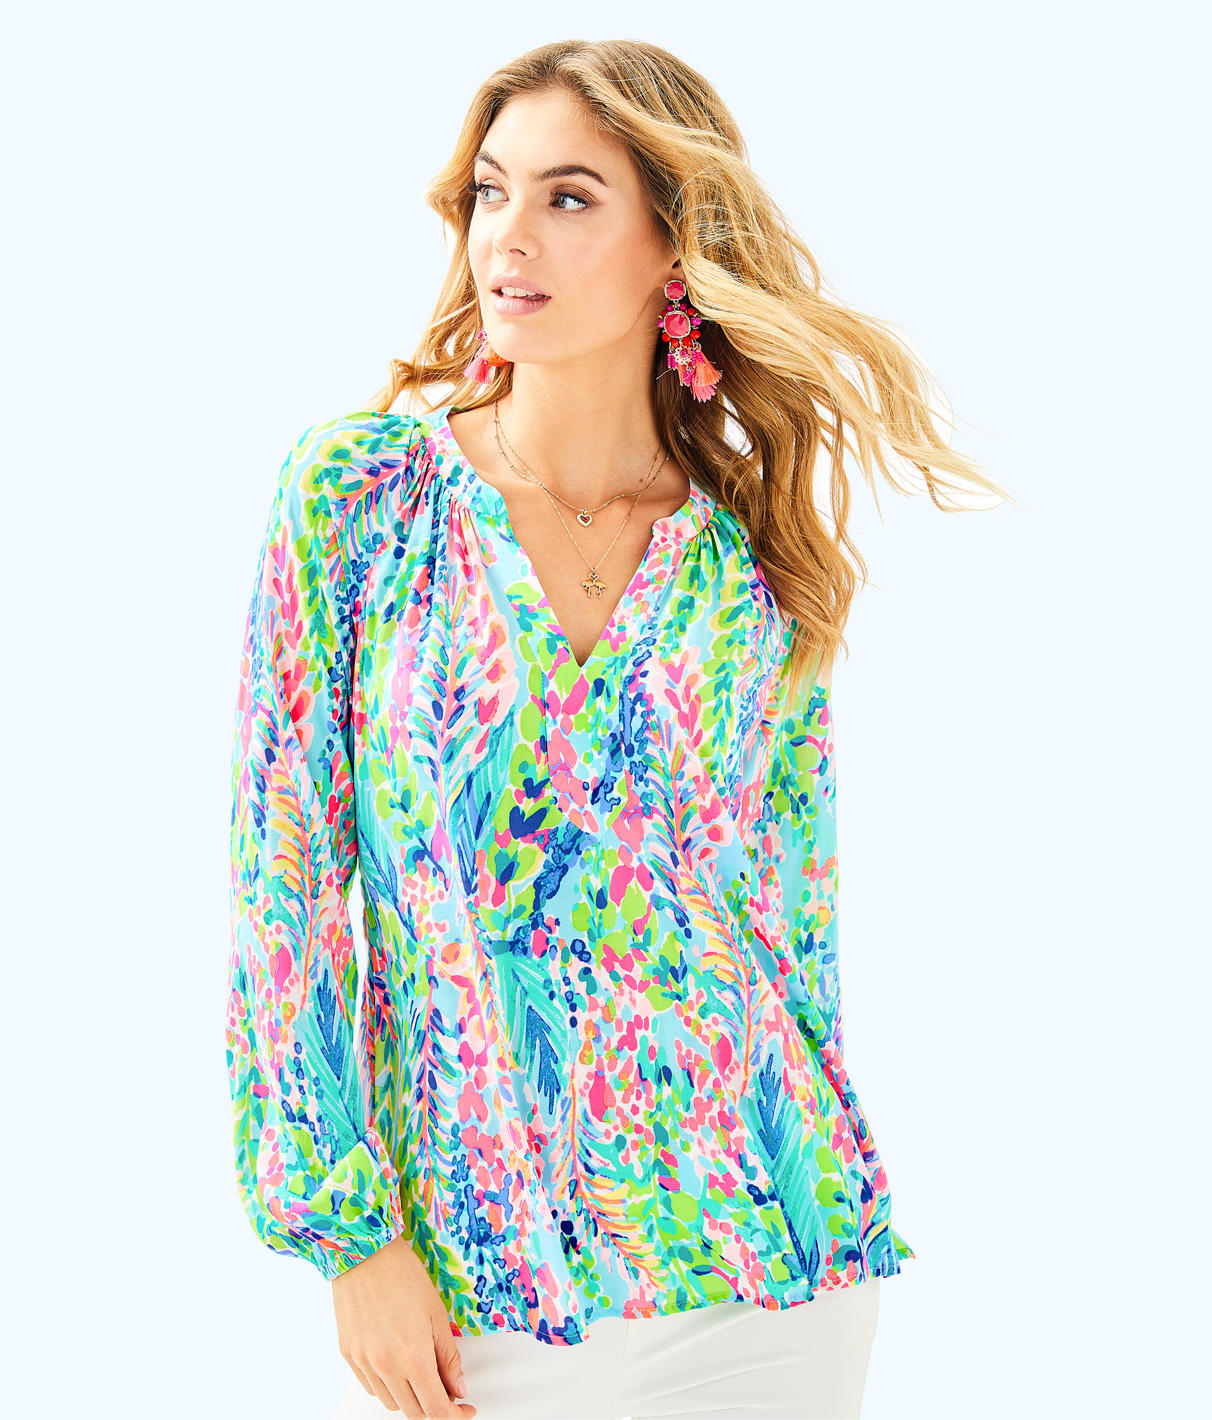 Lilly Pulitzer Lilly Pulitzer Womens Martinique Top